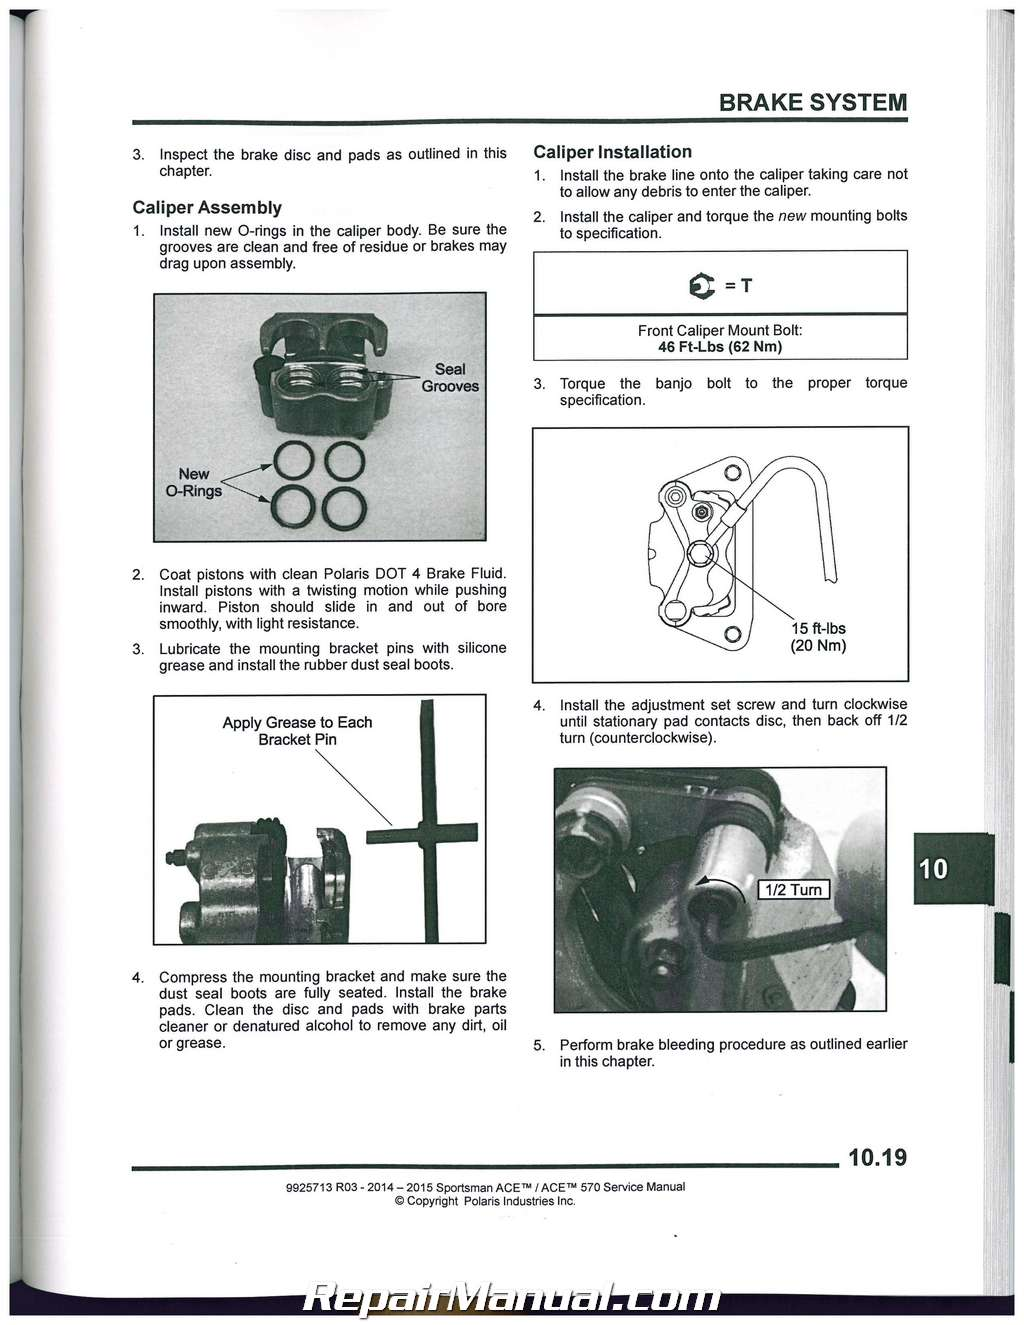 ace wiring diagram polaris sportsman 2014-2015 polaris sportsman ace 570 atv service manual ace wiring diagram